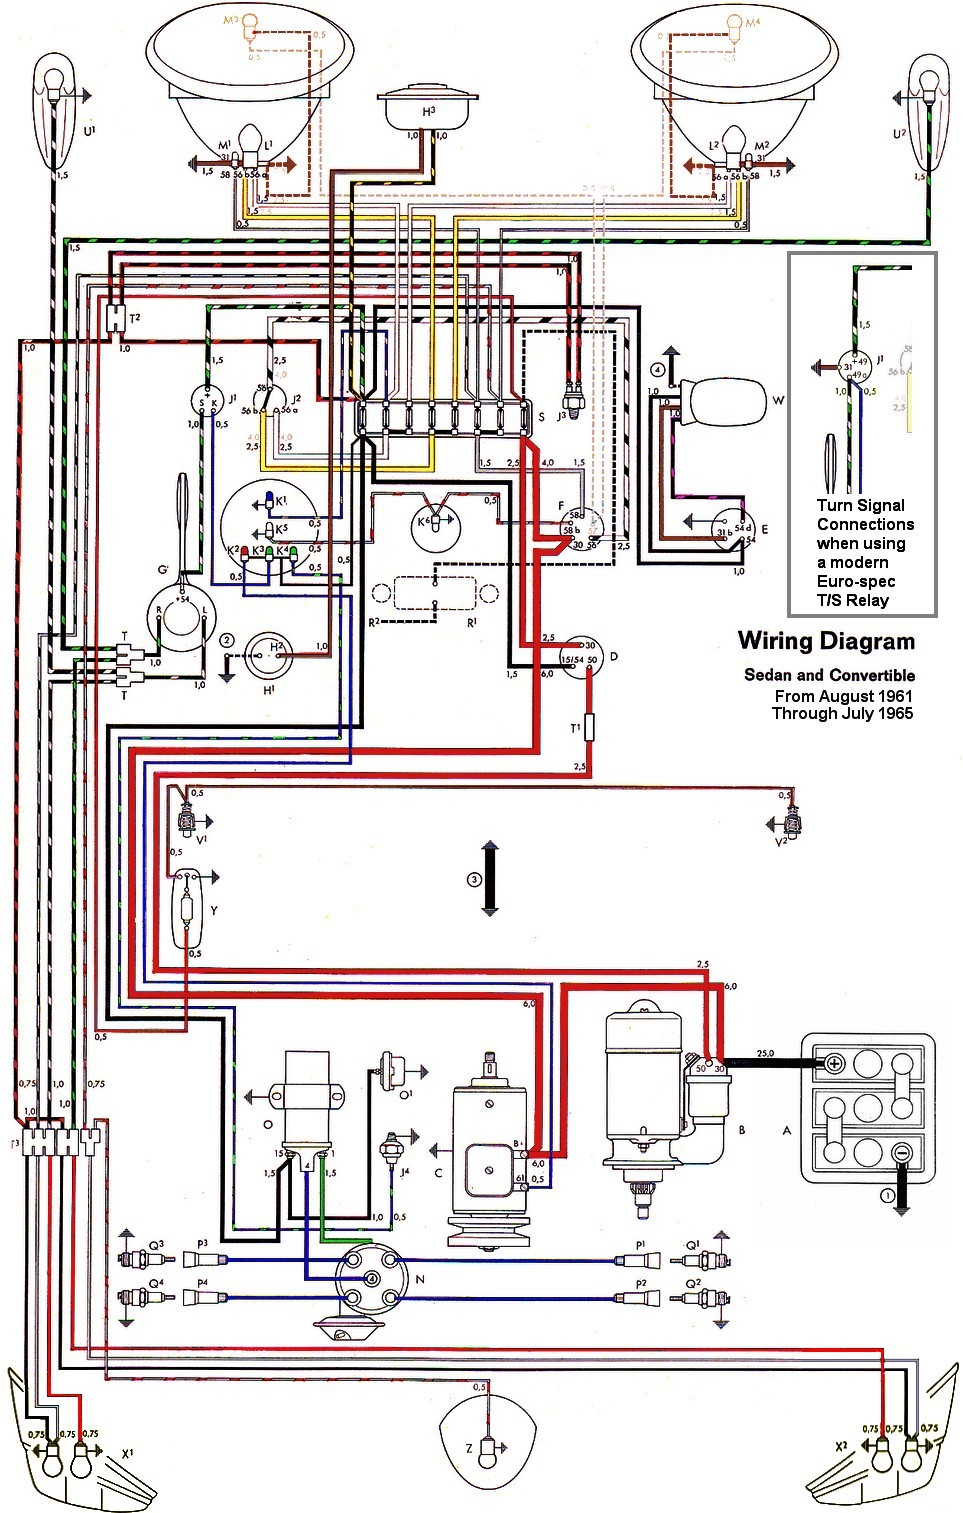 Bug Crcuito Con Euro Specs on Vw Beetle Wiring Diagram 1962